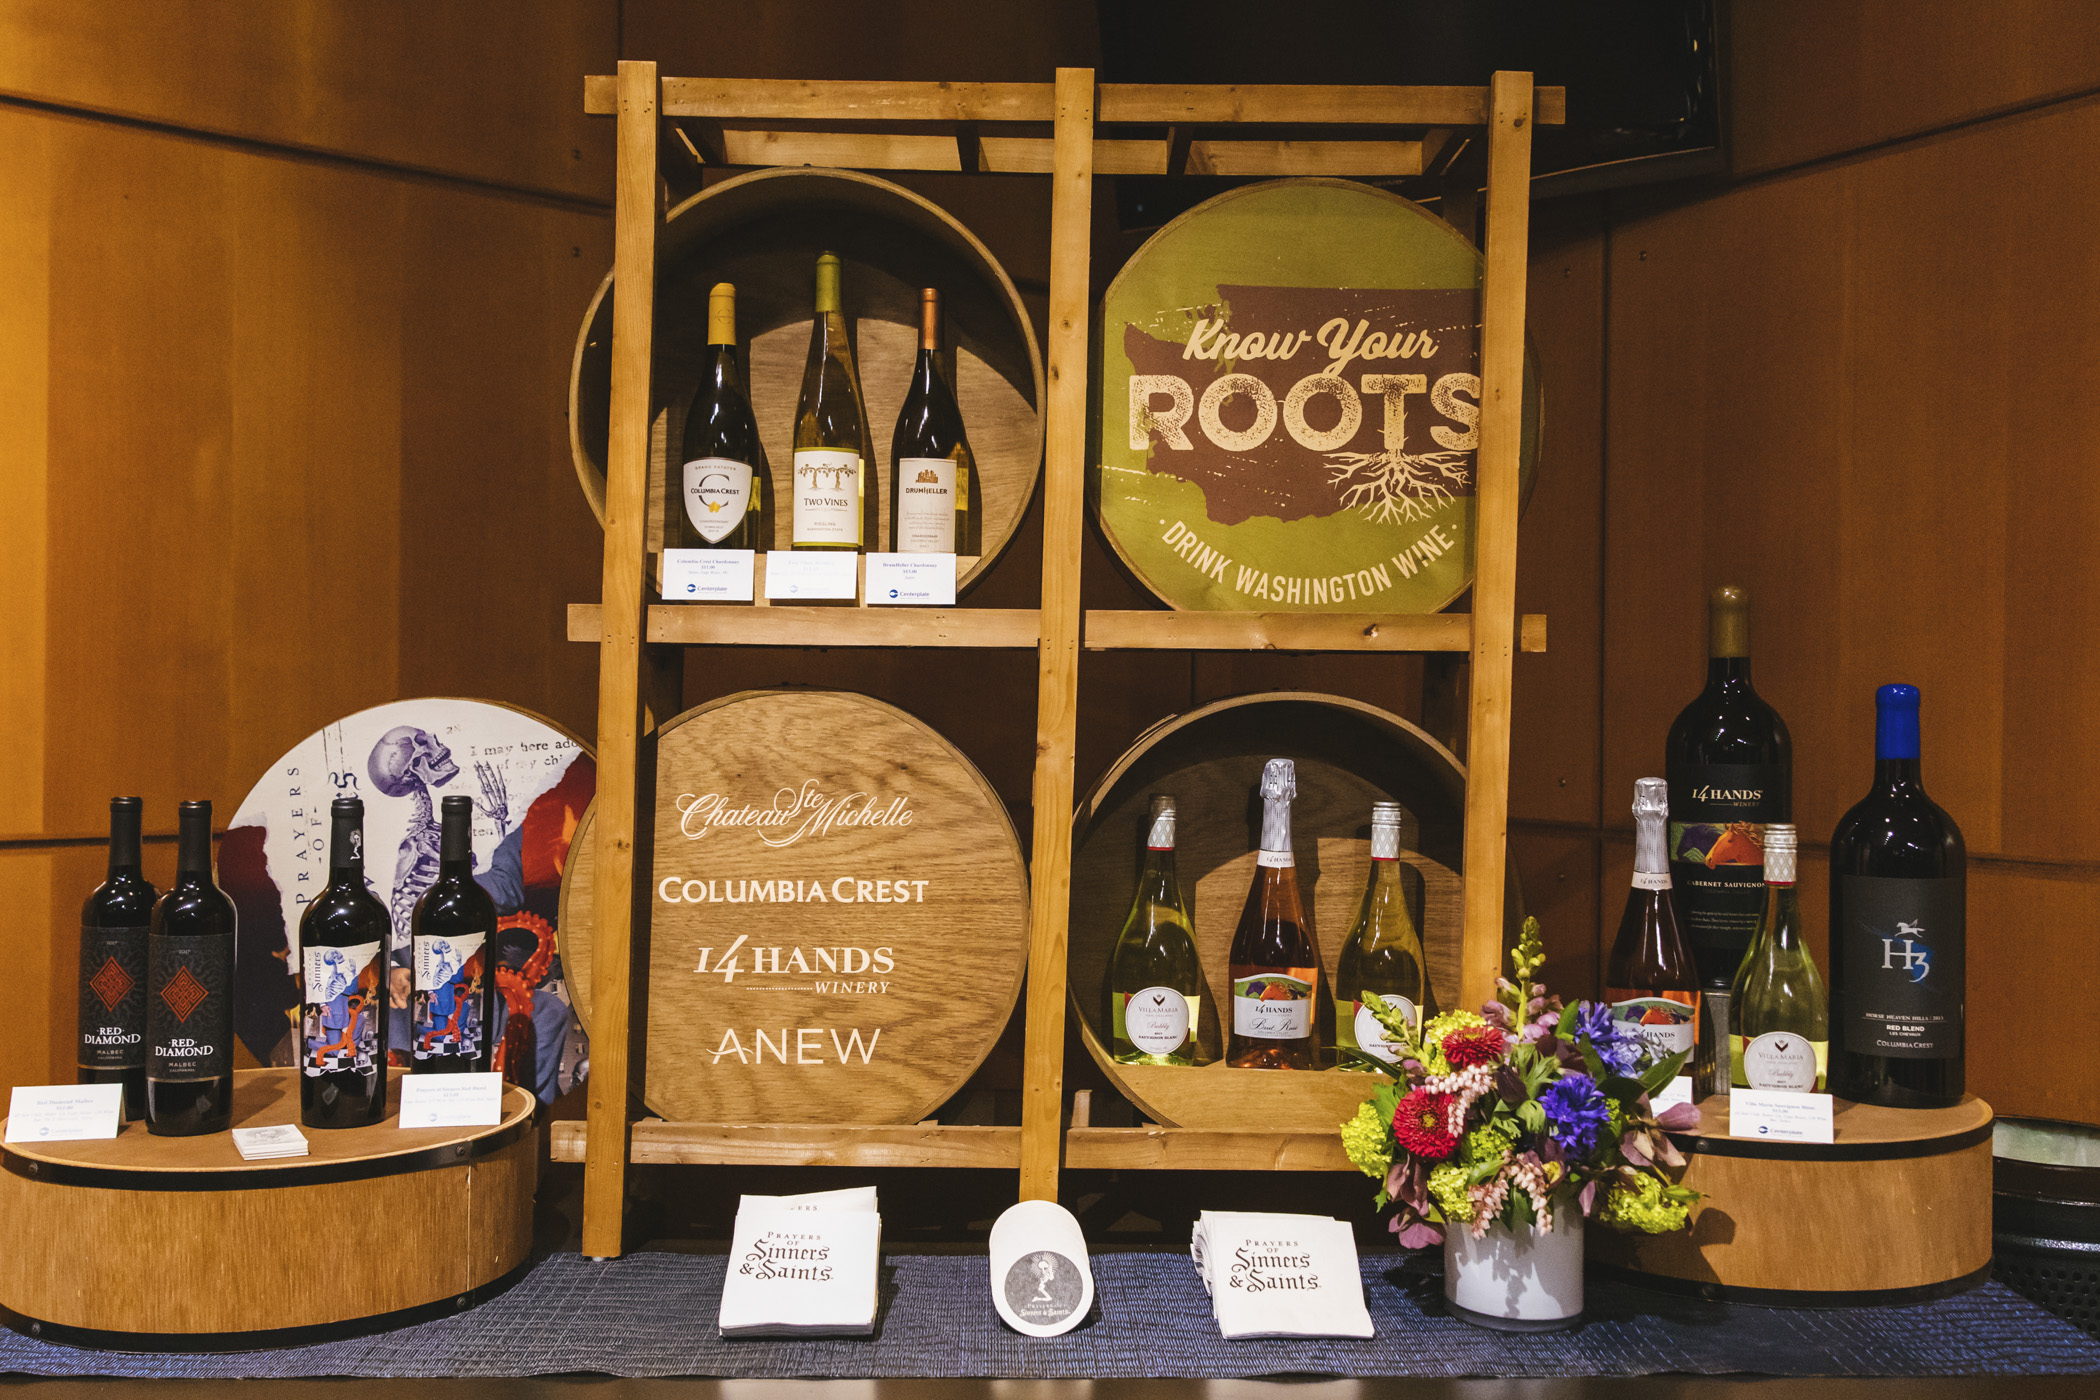 Wine selections. We snuck in a little preview of the beer, wine and spirits offerings for the 2020 Seattle Mariners season at T-Mobile Park! Home Opener is March 26 at 1:10 p.m. agains the Rangers. Go M's! (Image: Sunita Martini / Seattle Refined)